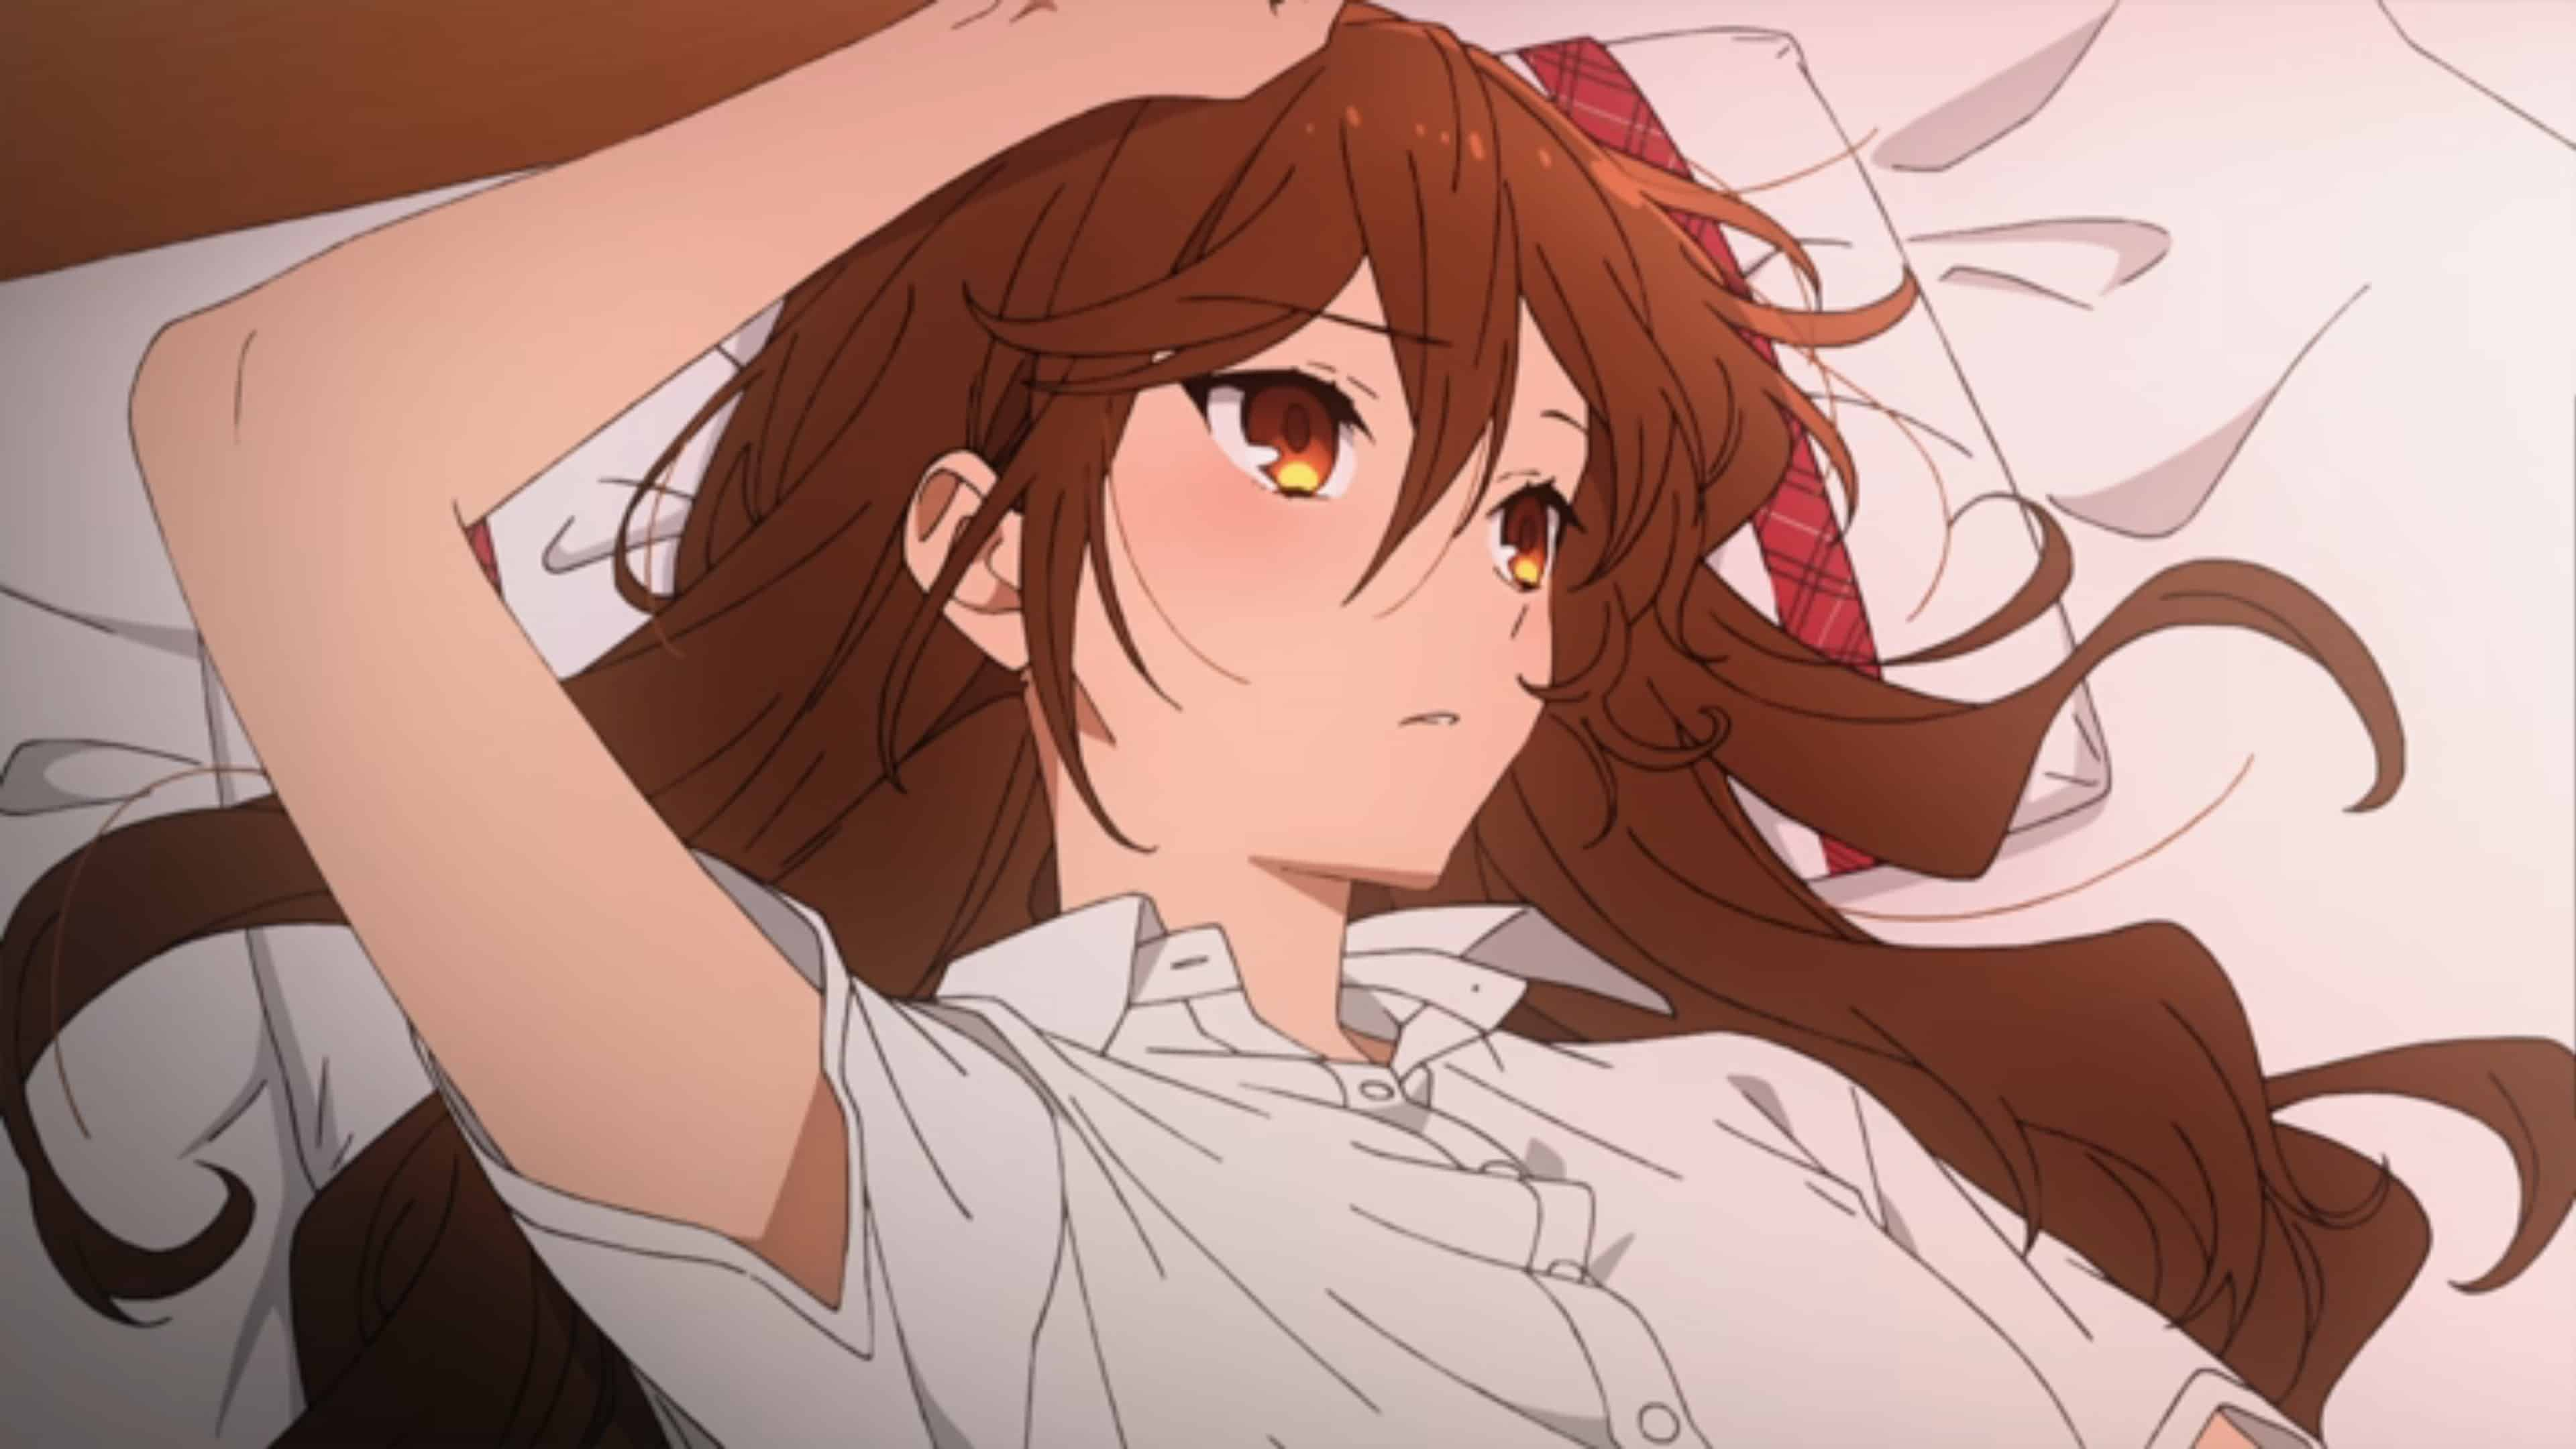 Hori laying down in bed